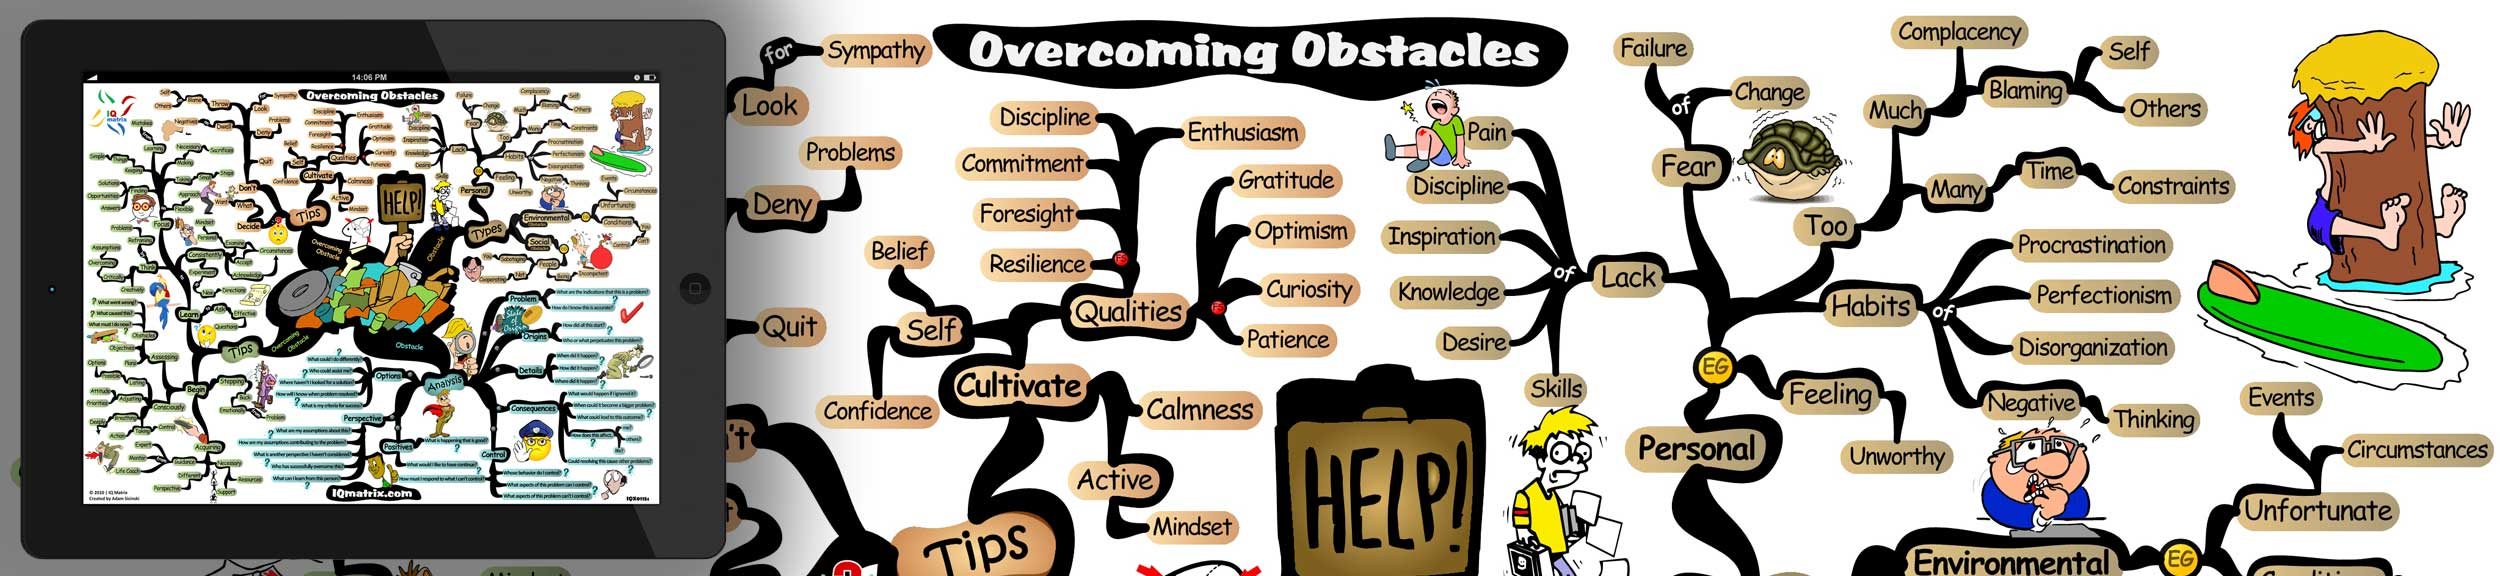 How To Overcome The Obstacles That Are Holding Your Goals Hostage  Duct Tape Diy Projects also Woodworking Plans Table Diy Aquarium Projects